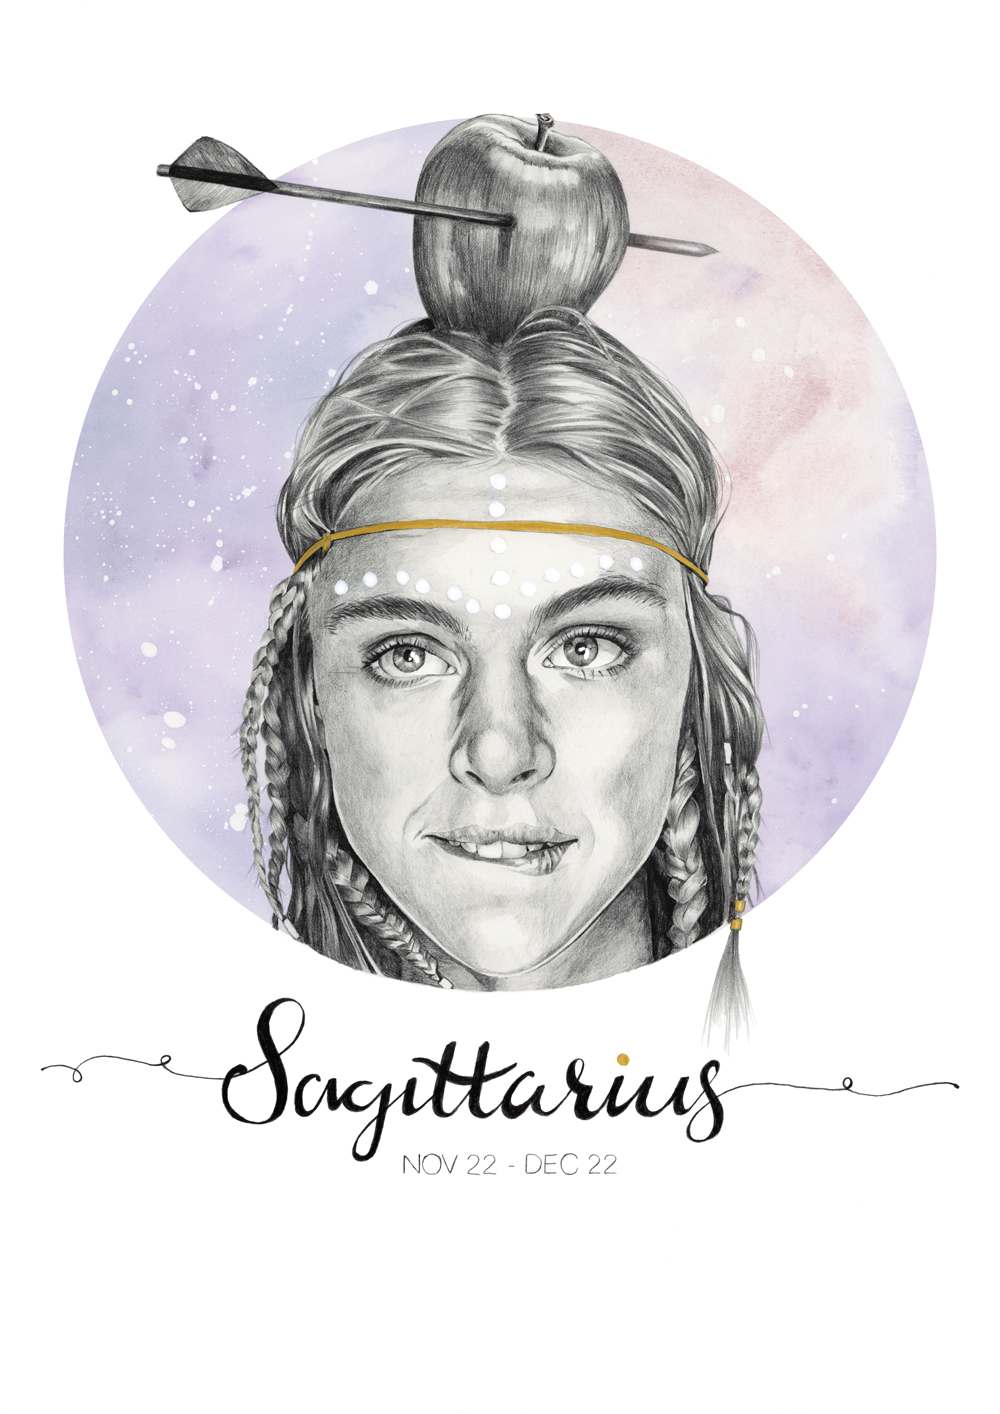 """Sagittarius"" - graphite pencil and watercolour Star Sign illustration by Alison Sargent"